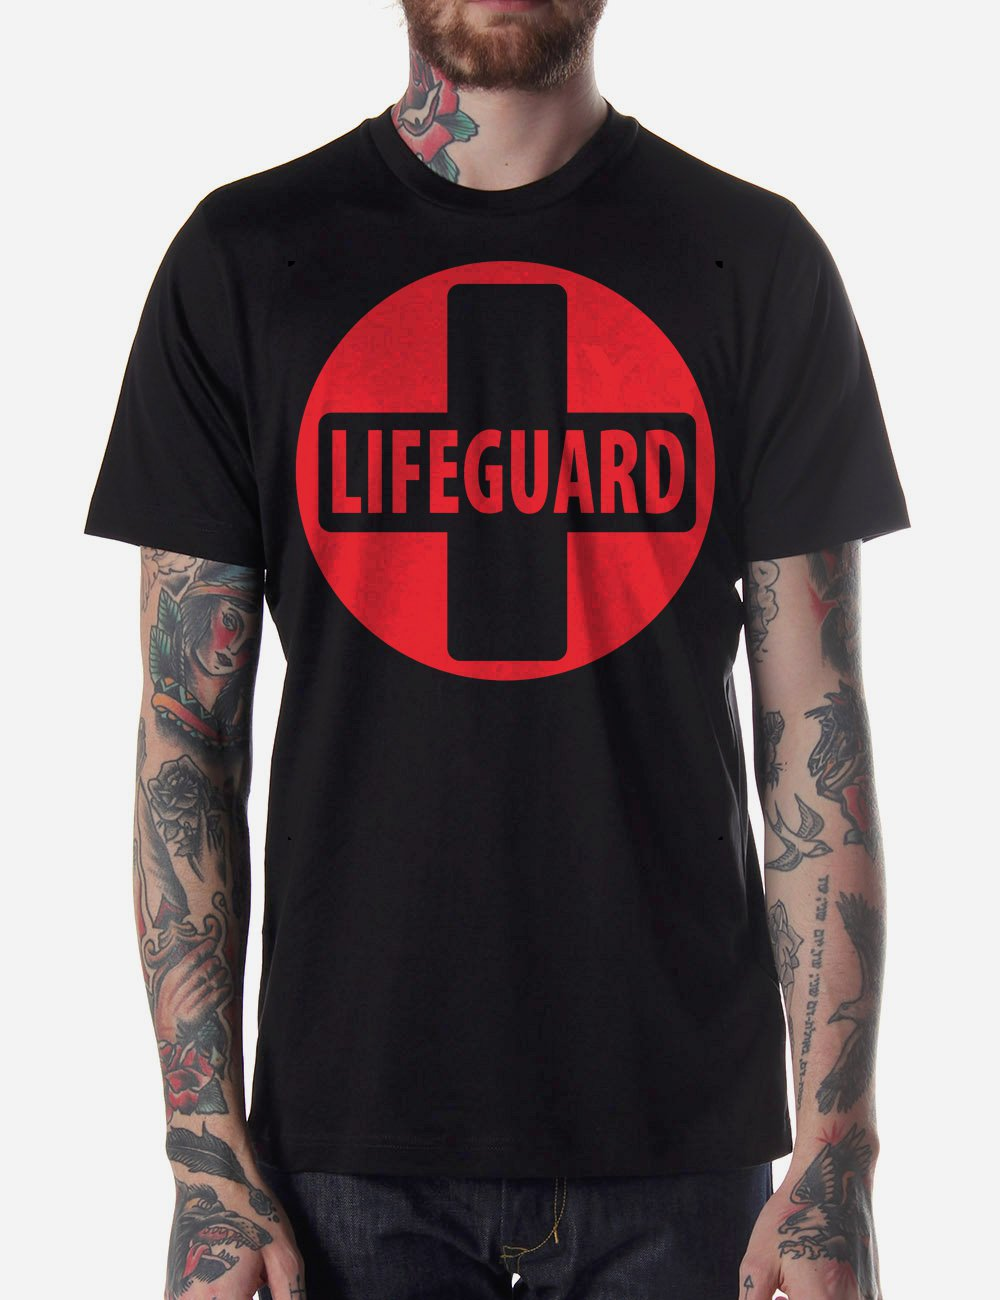 Black Men Tshirt Life Guard Design Black Tshirt For Men